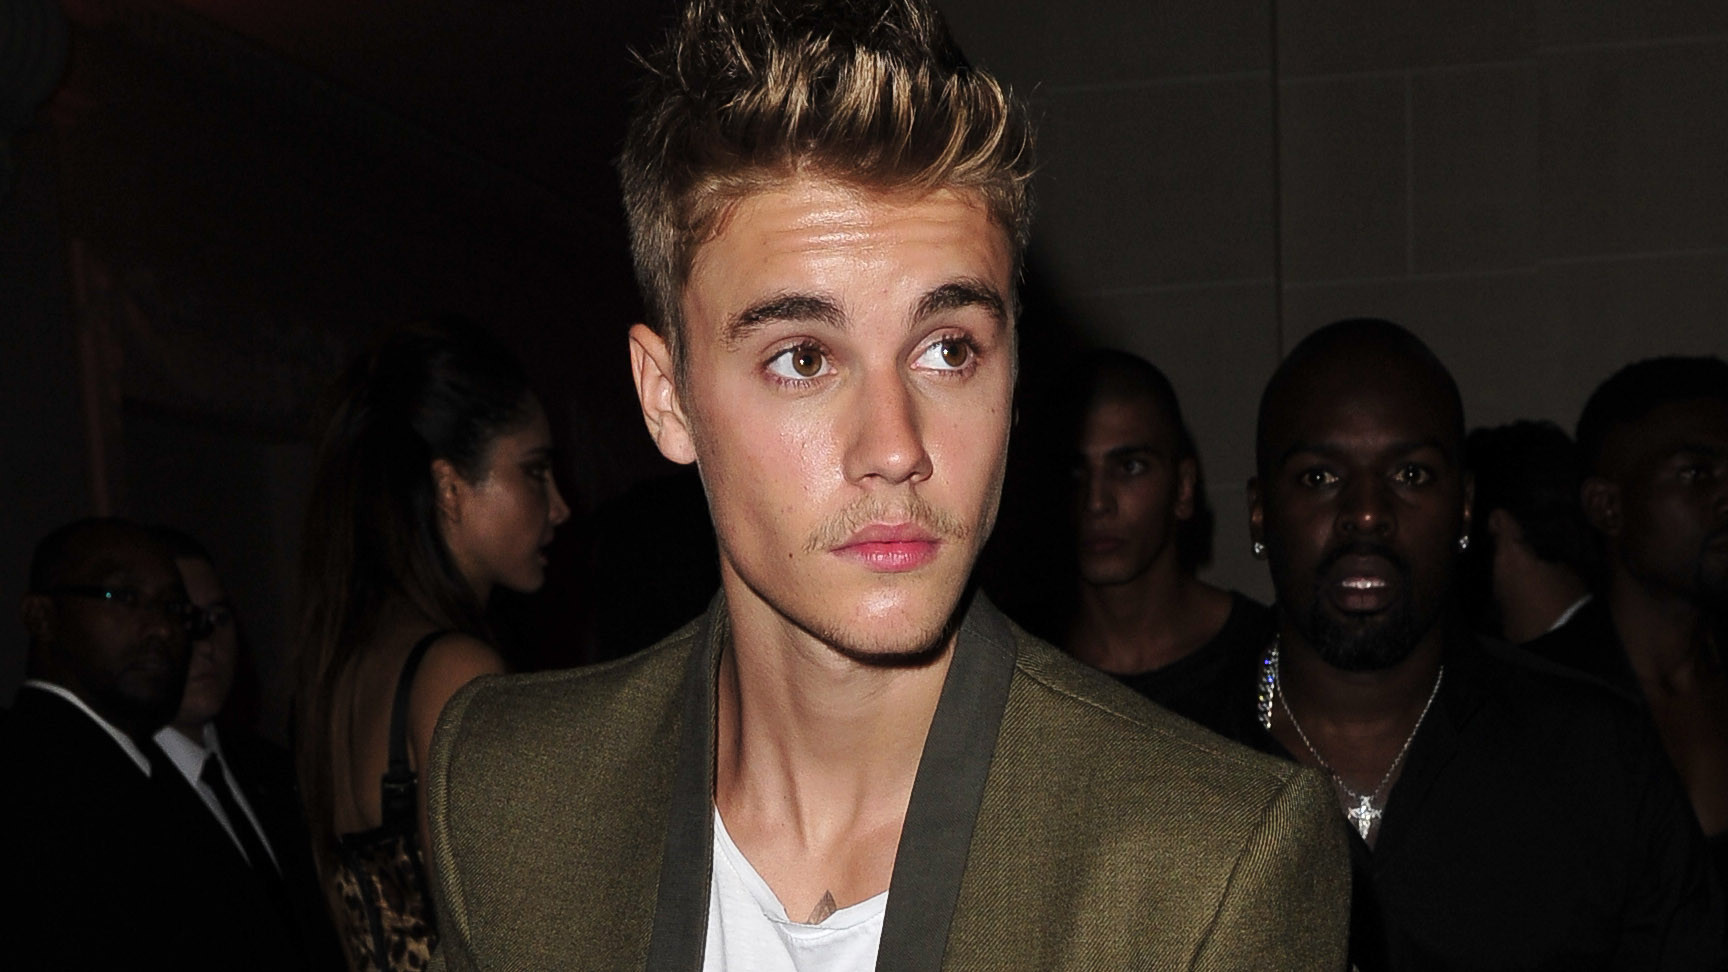 Justin Bieber reportedly punches paparazzo in Paris kerfuffle